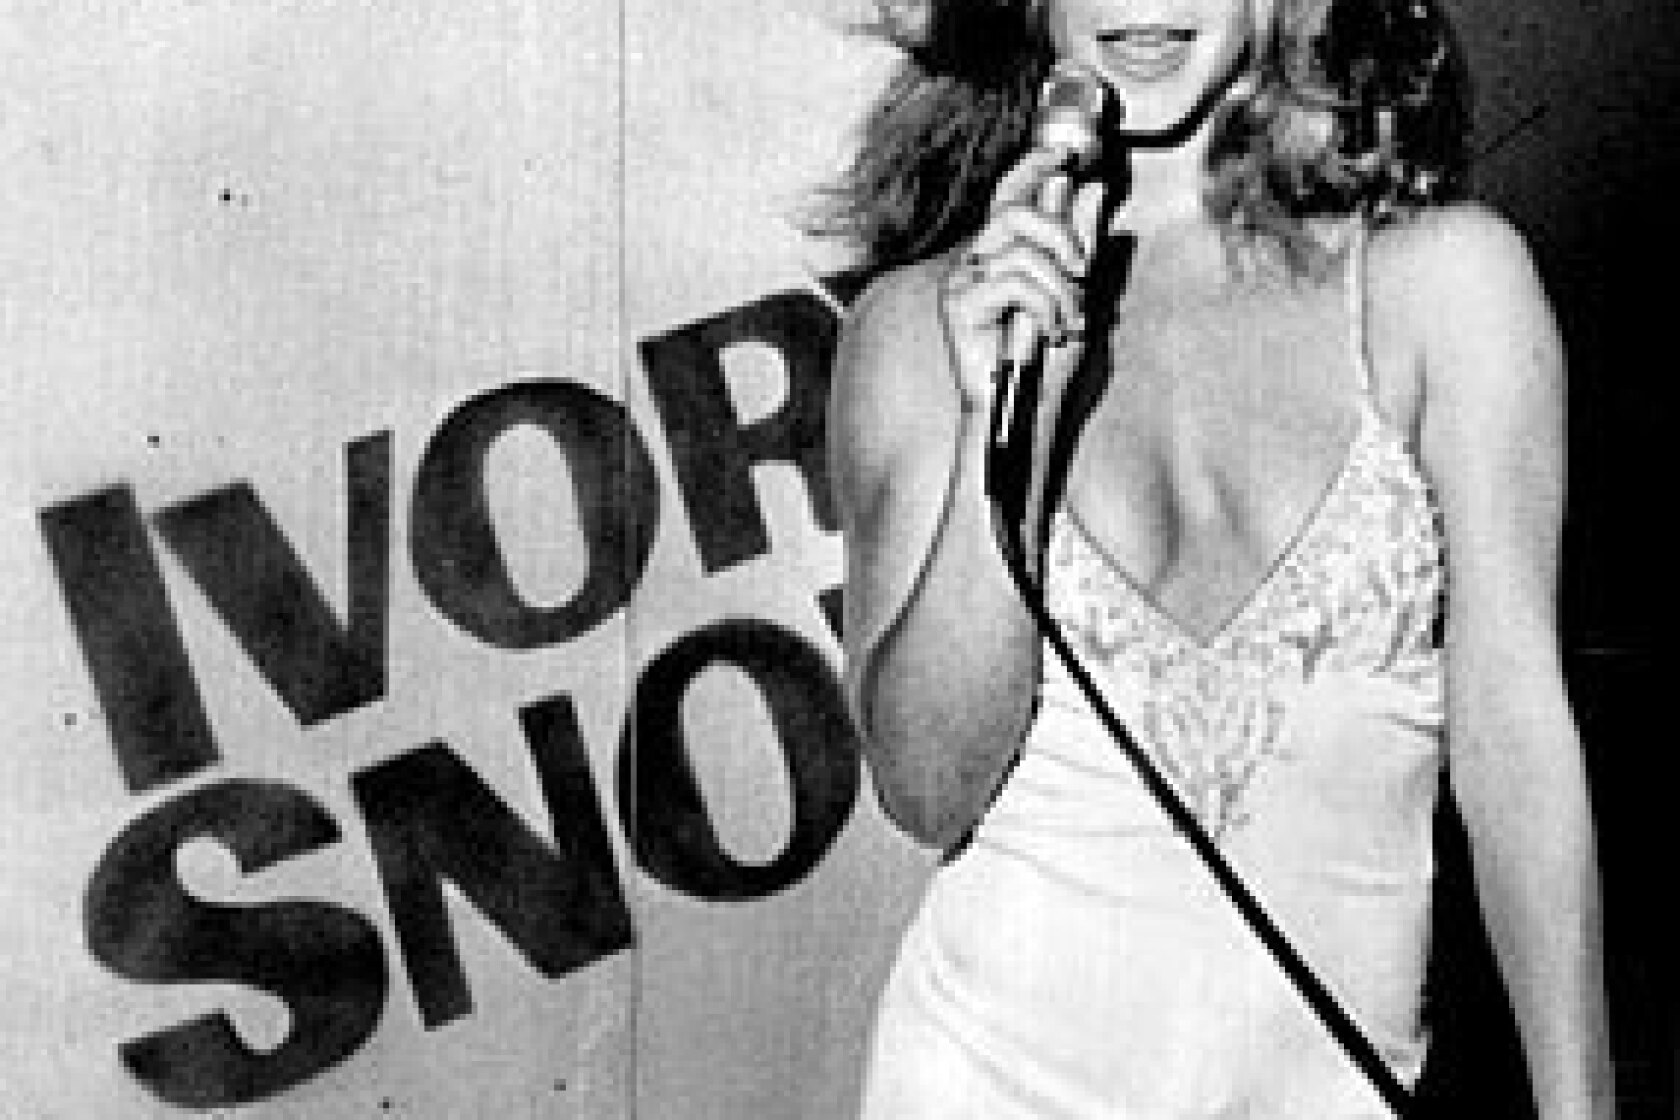 70S Black Porn marilyn chambers dies at 56; '70s porn star and ivory snow